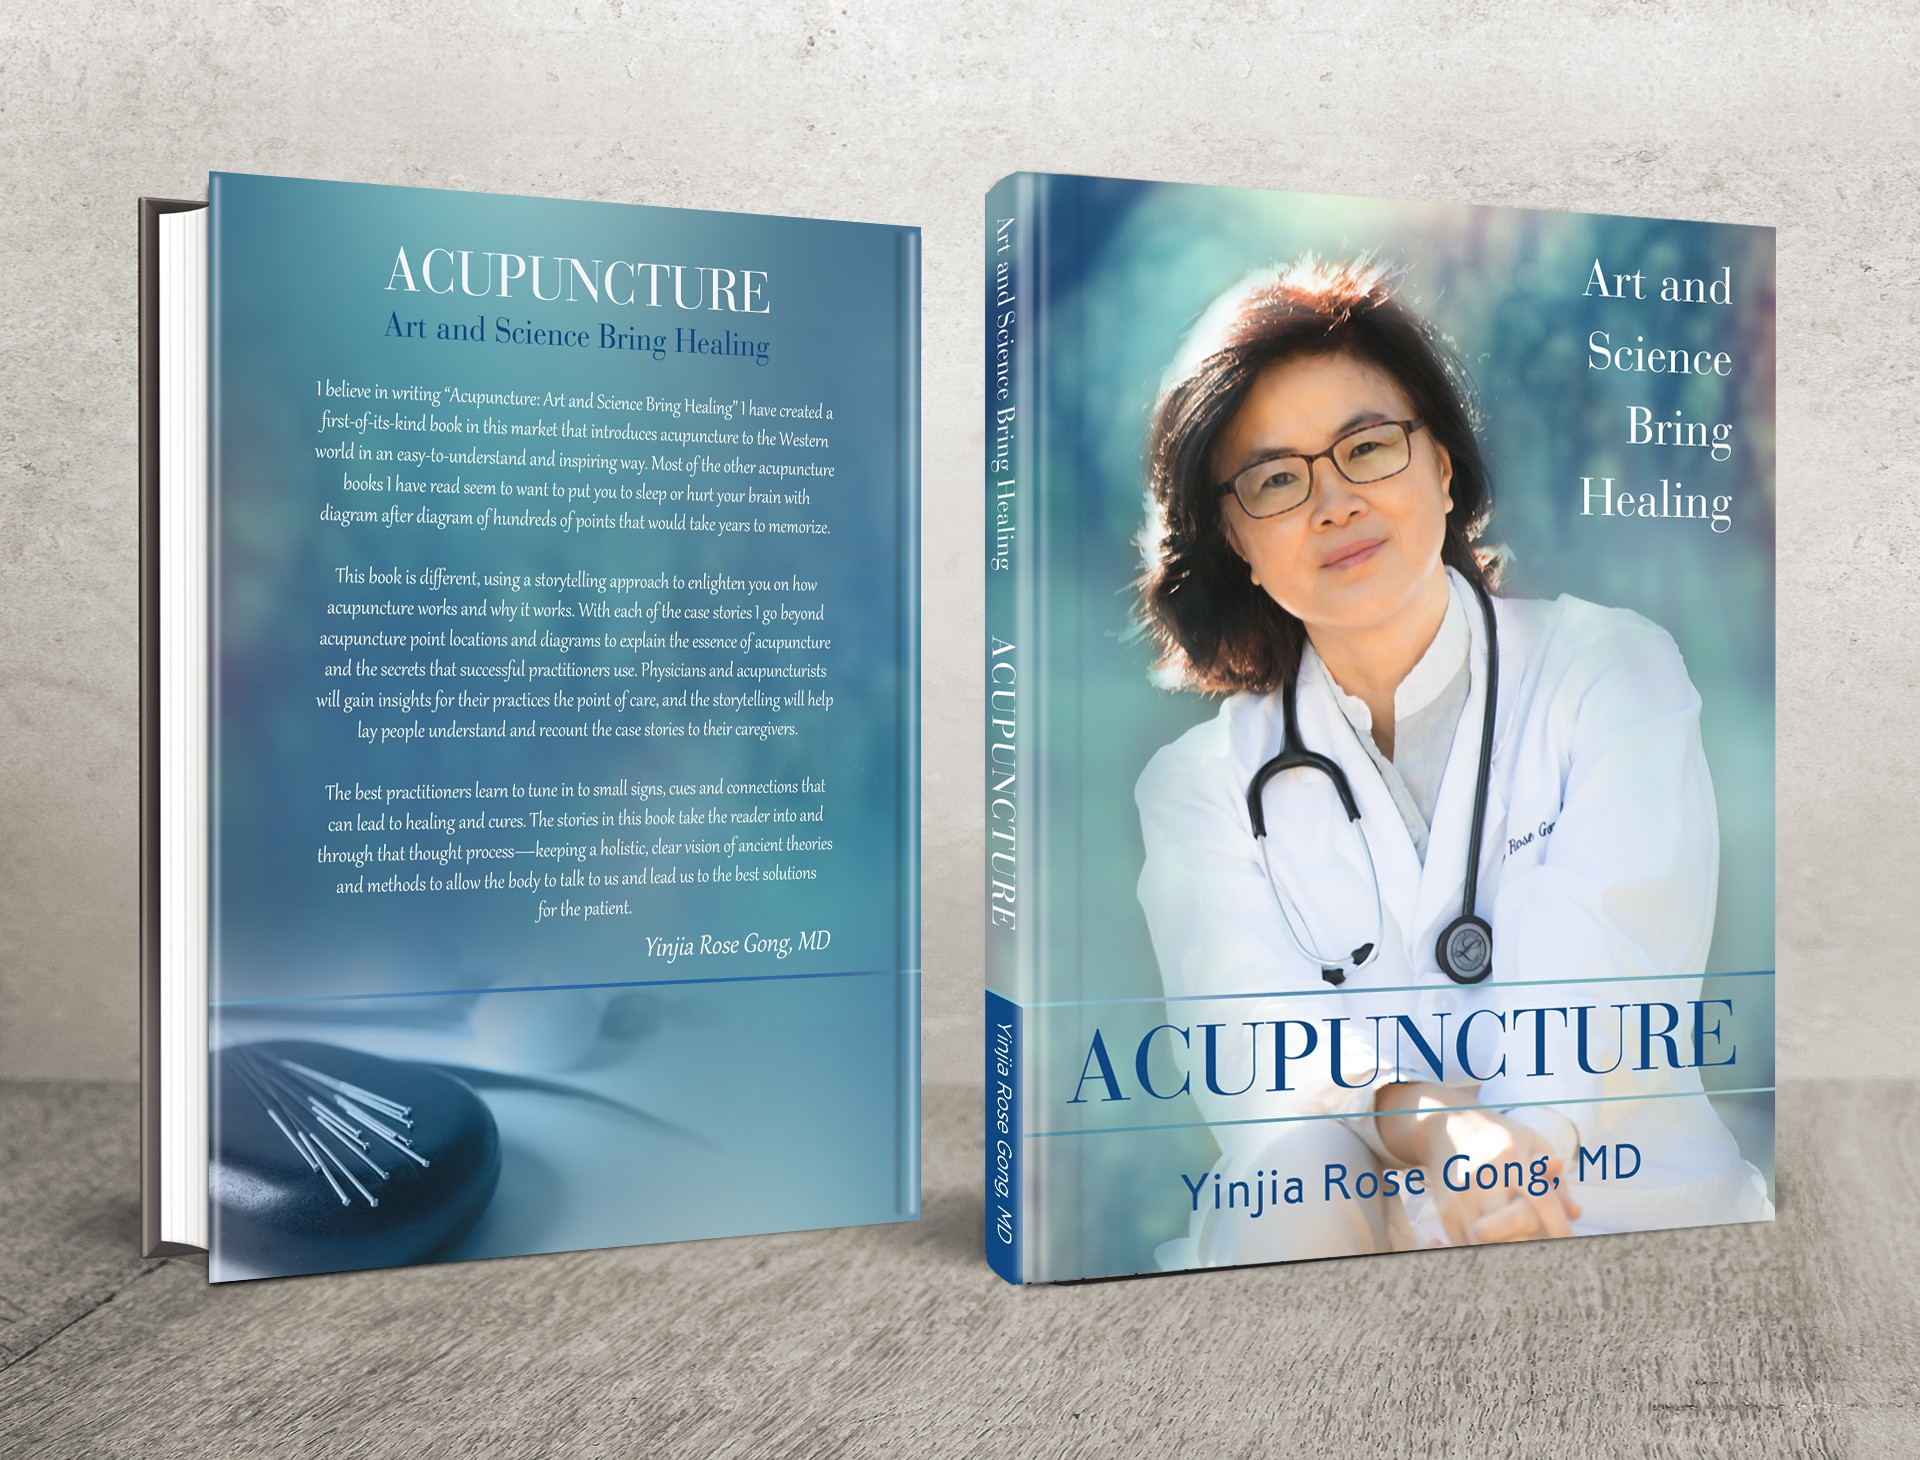 Acupuncture (ebook and print)